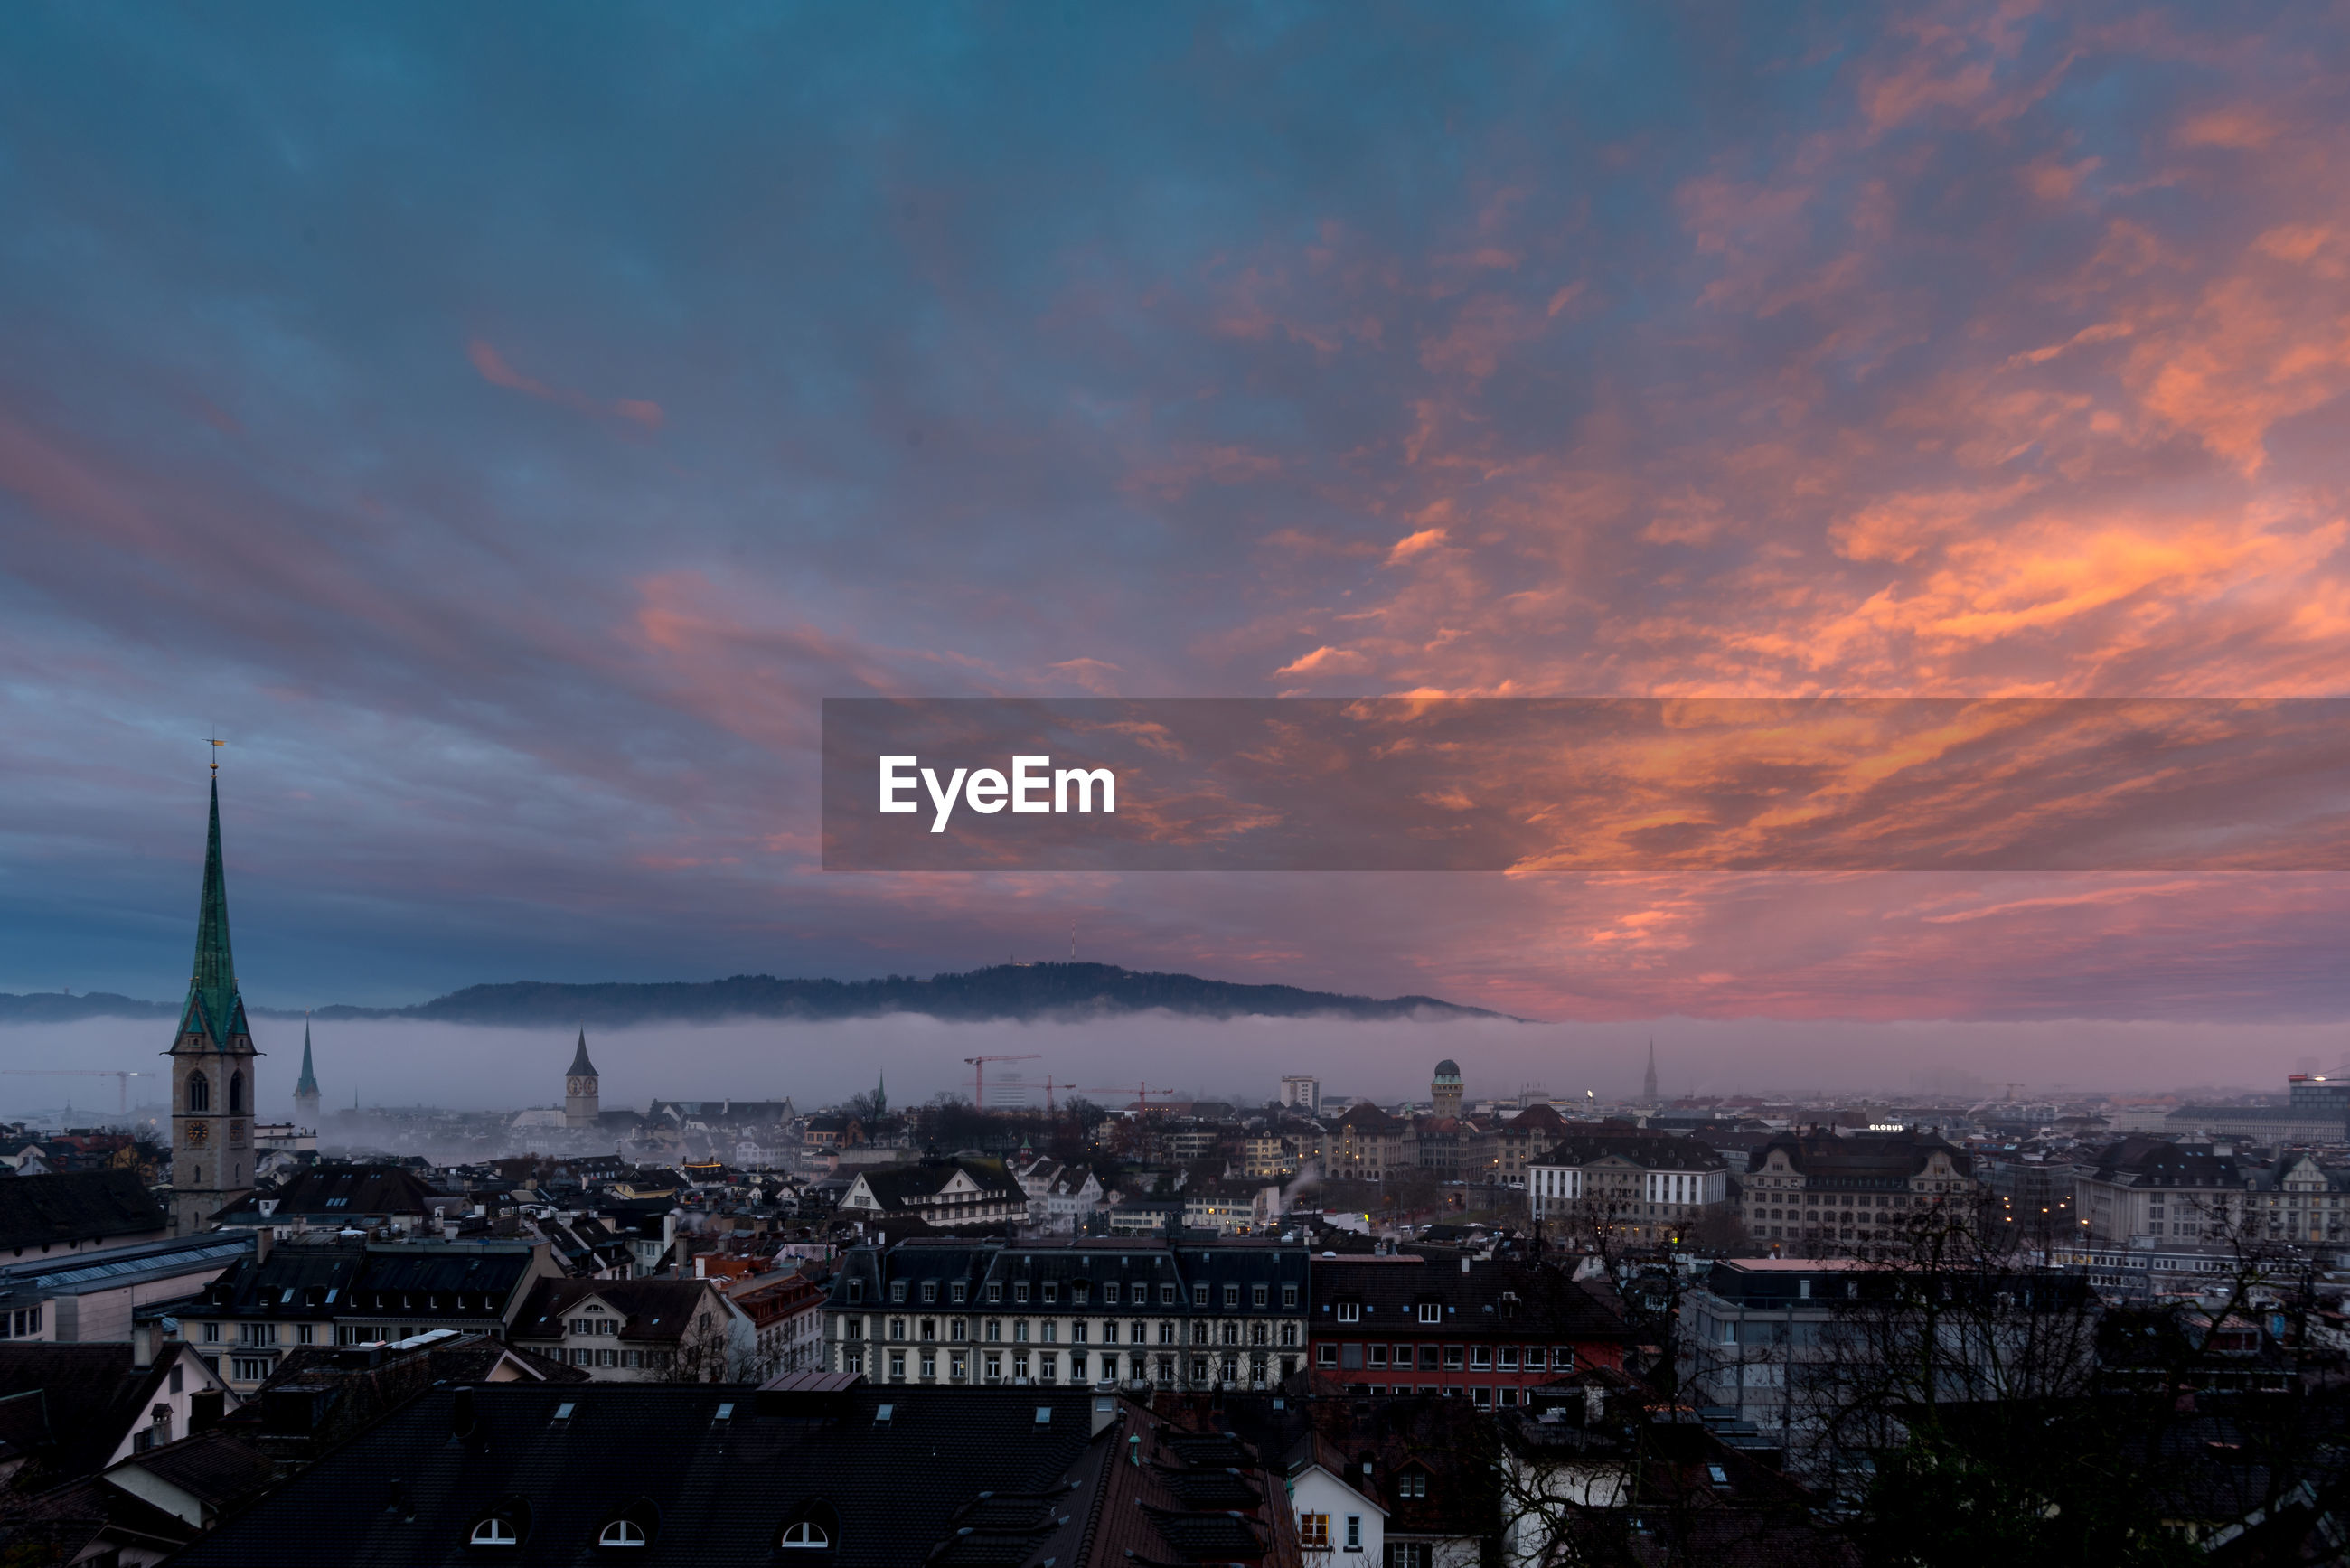 High angle view of townscape against cloudy sky during sunset